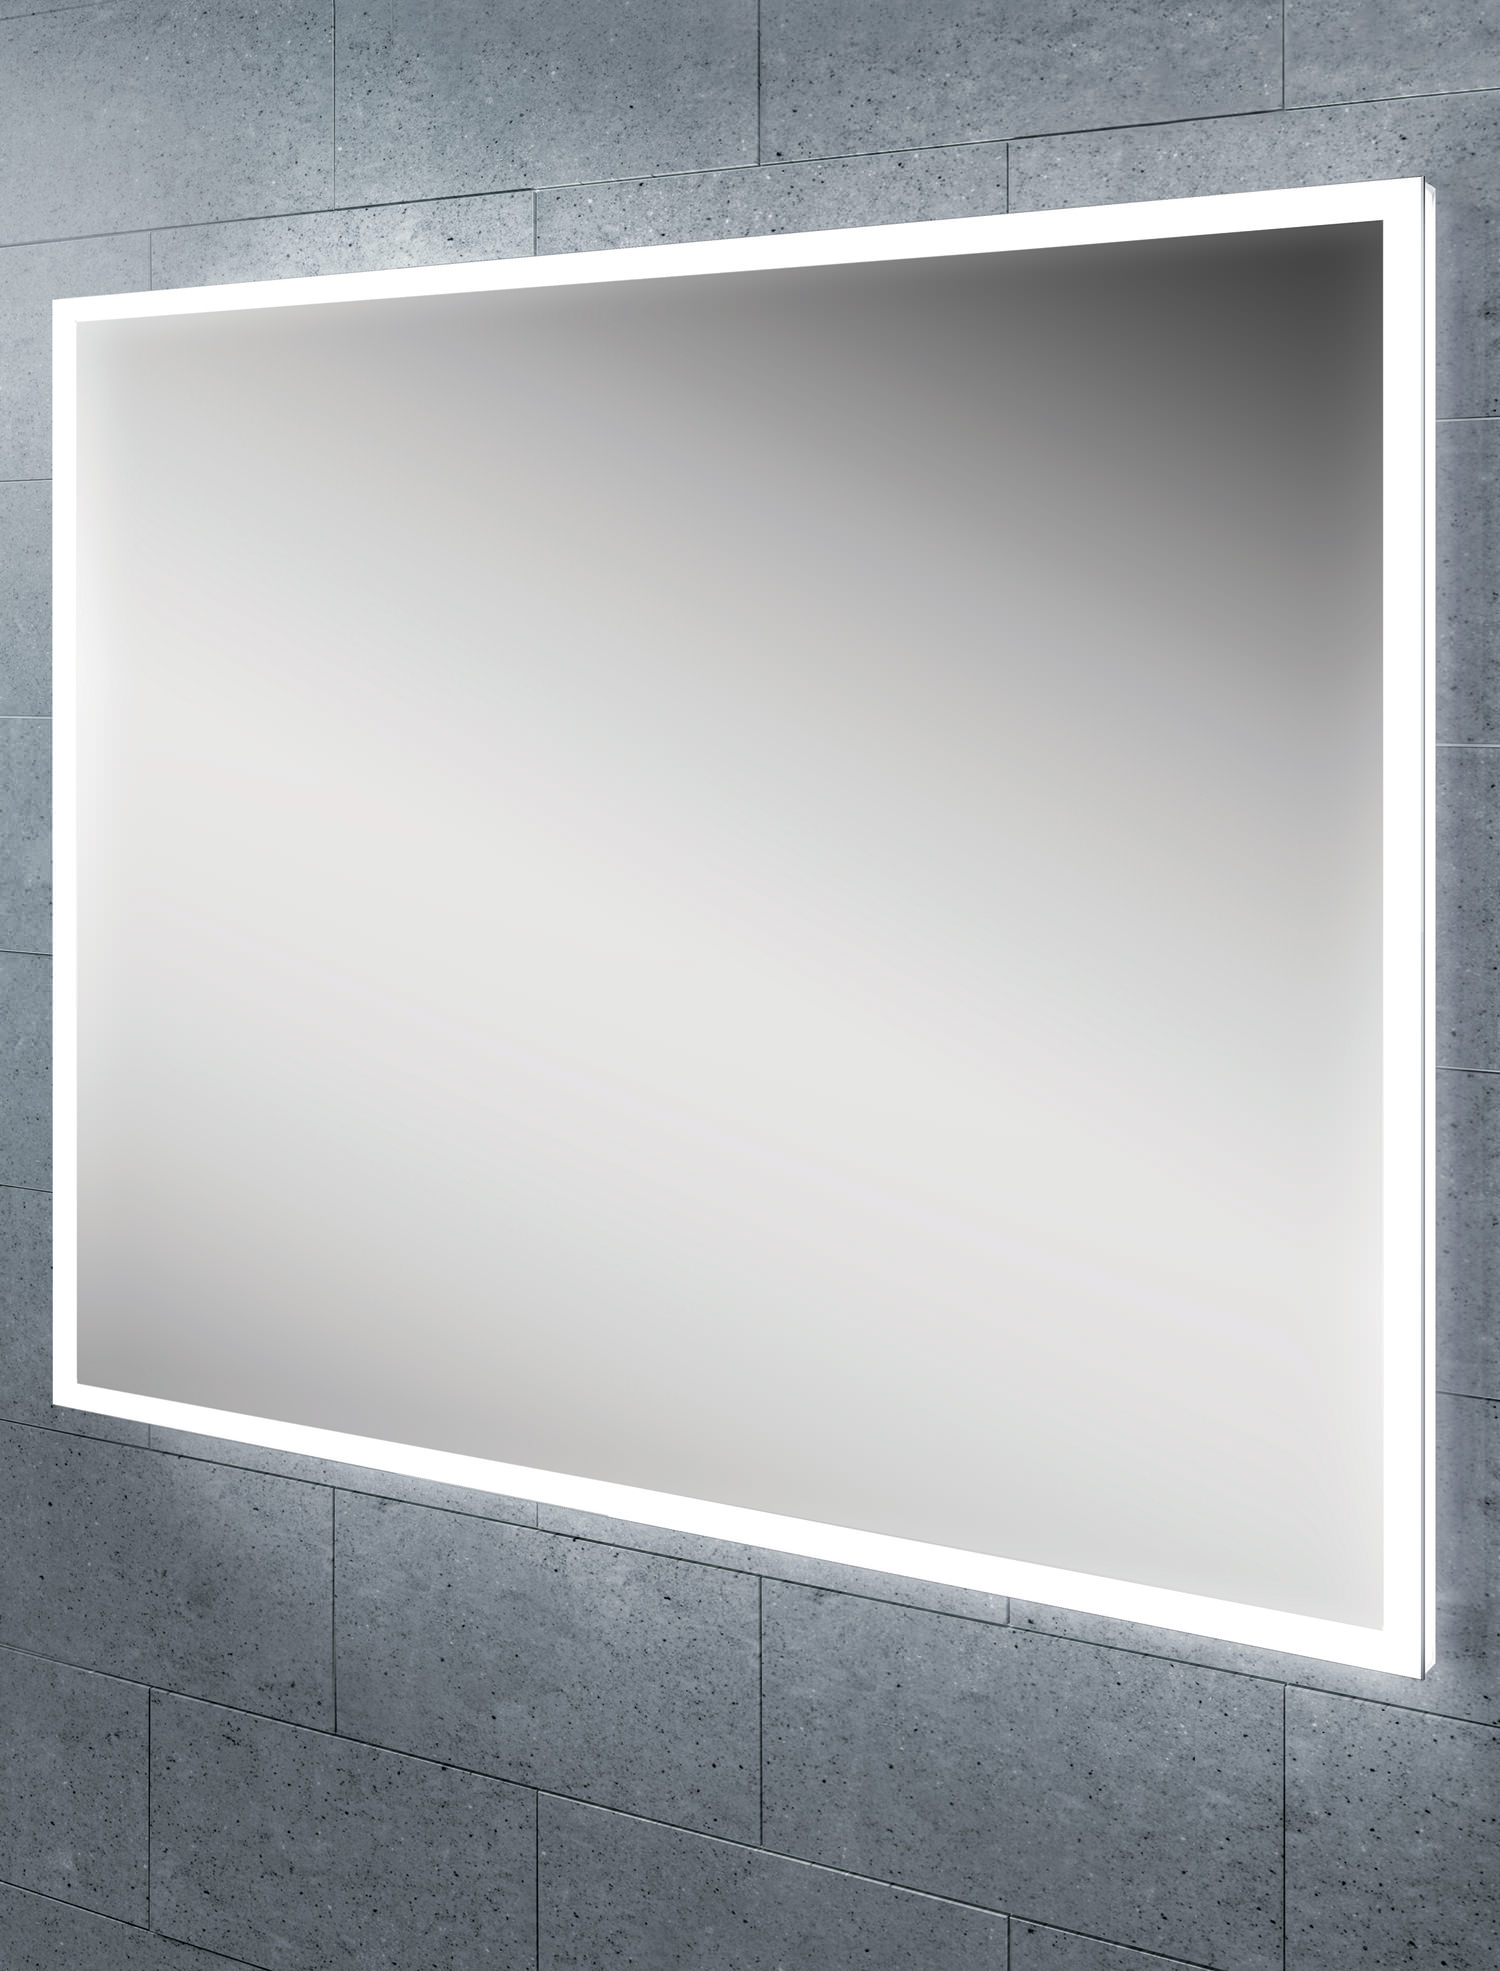 bathroom mirrors. hib globe 60 steam free led illuminated bathroom mirror 800 x 600mm mirrors & Bathroom Mirrors. Bathroom Mirrors - Werilo.com